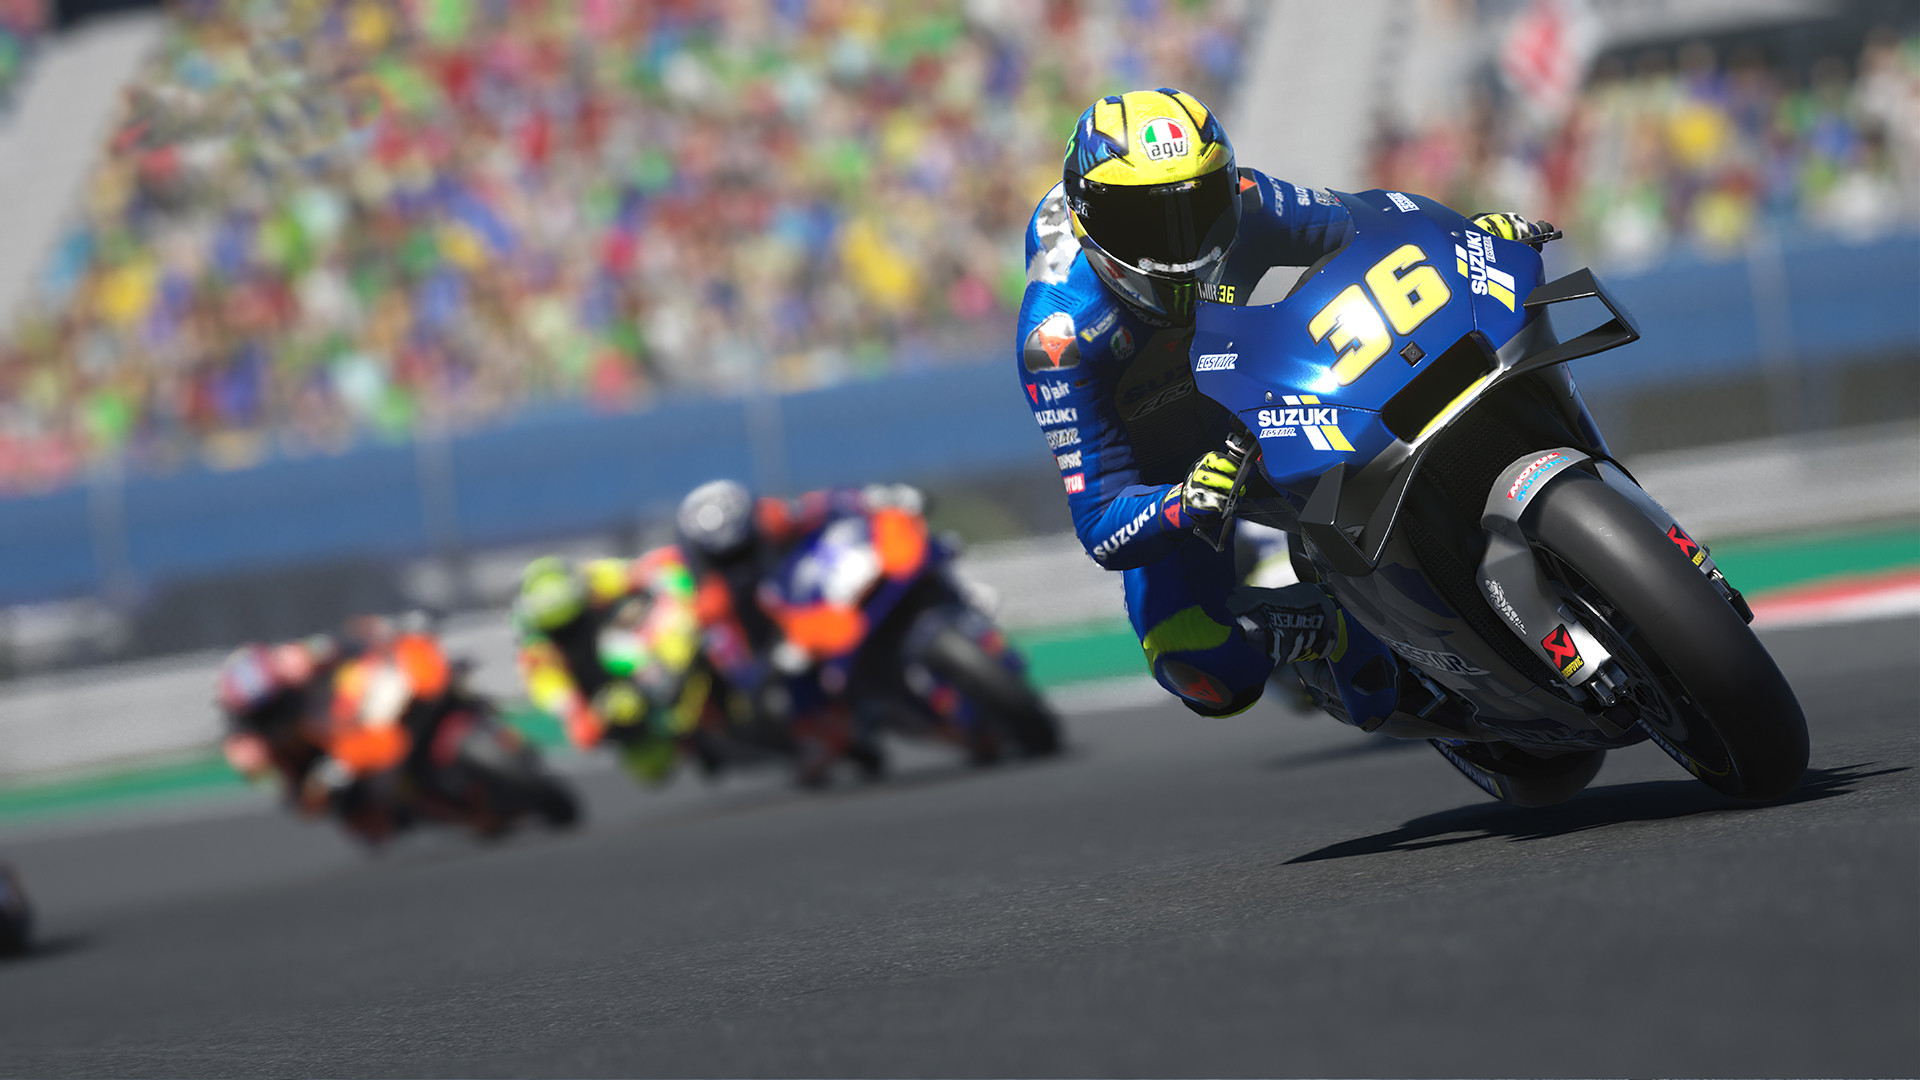 Find the best gaming PC for MotoGP20